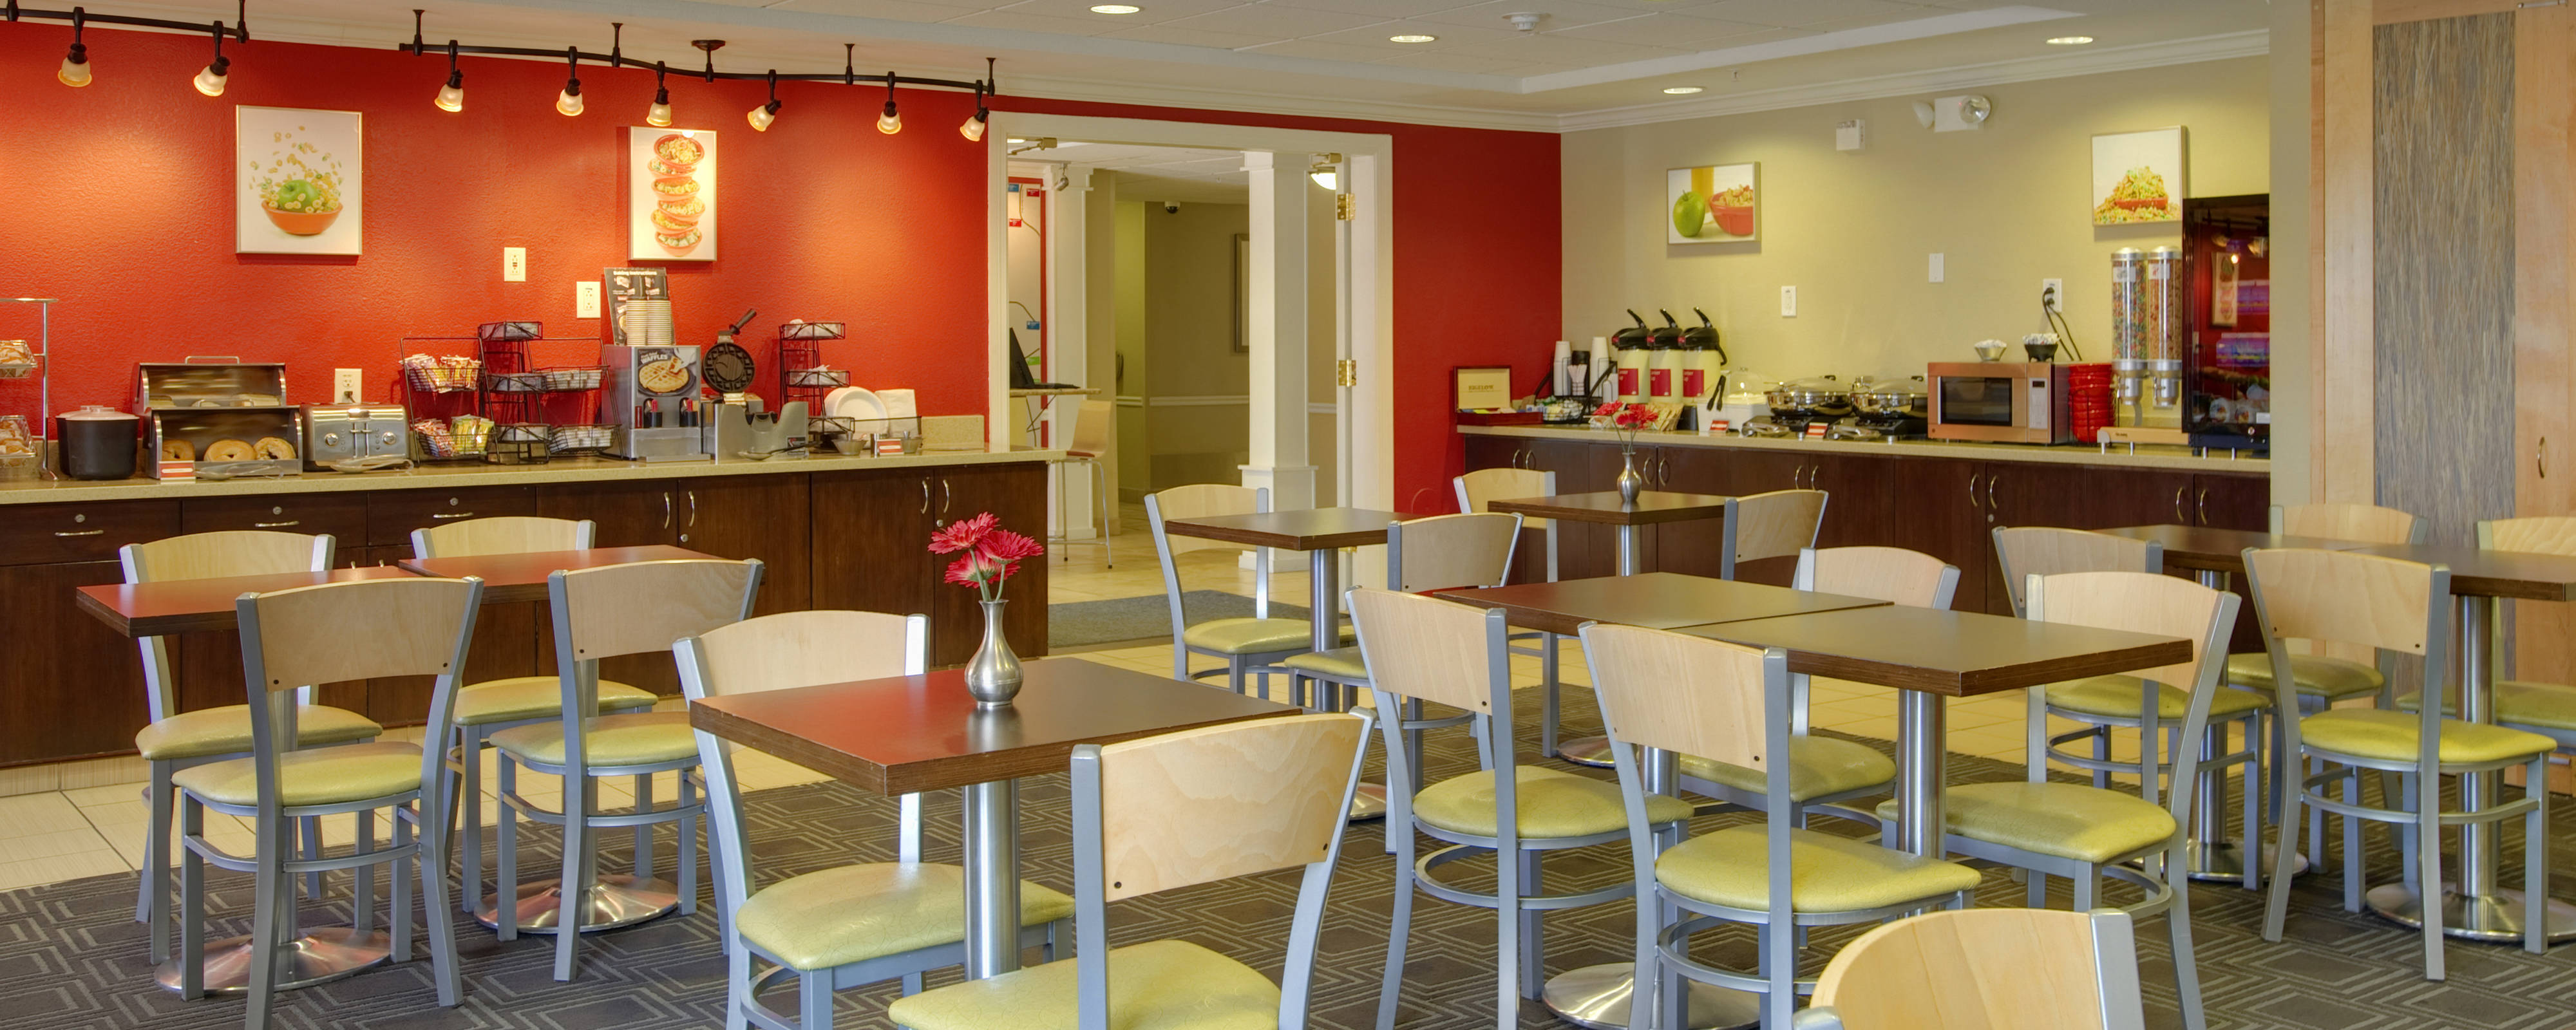 Marriott Towneplace Suites by Luke Draily Construction in Kansas City Missouri